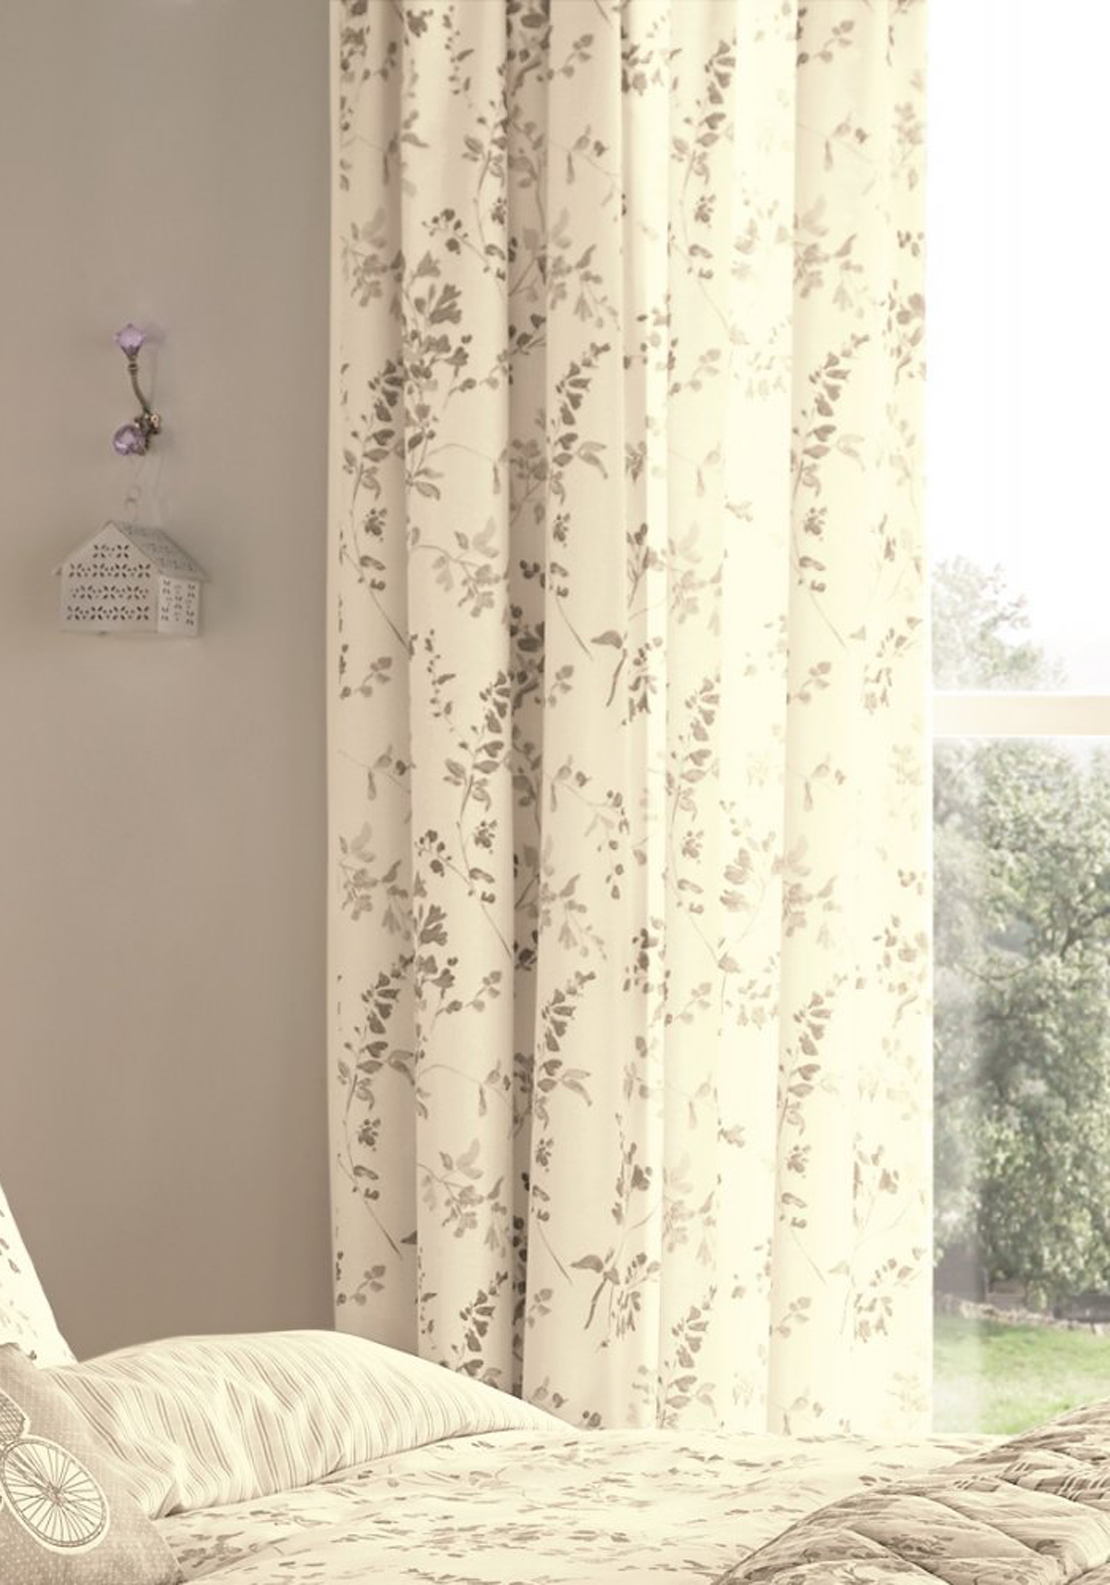 Dreams & Drapes Lila Readymade Lined Curtains, Natural 66 x 72cm